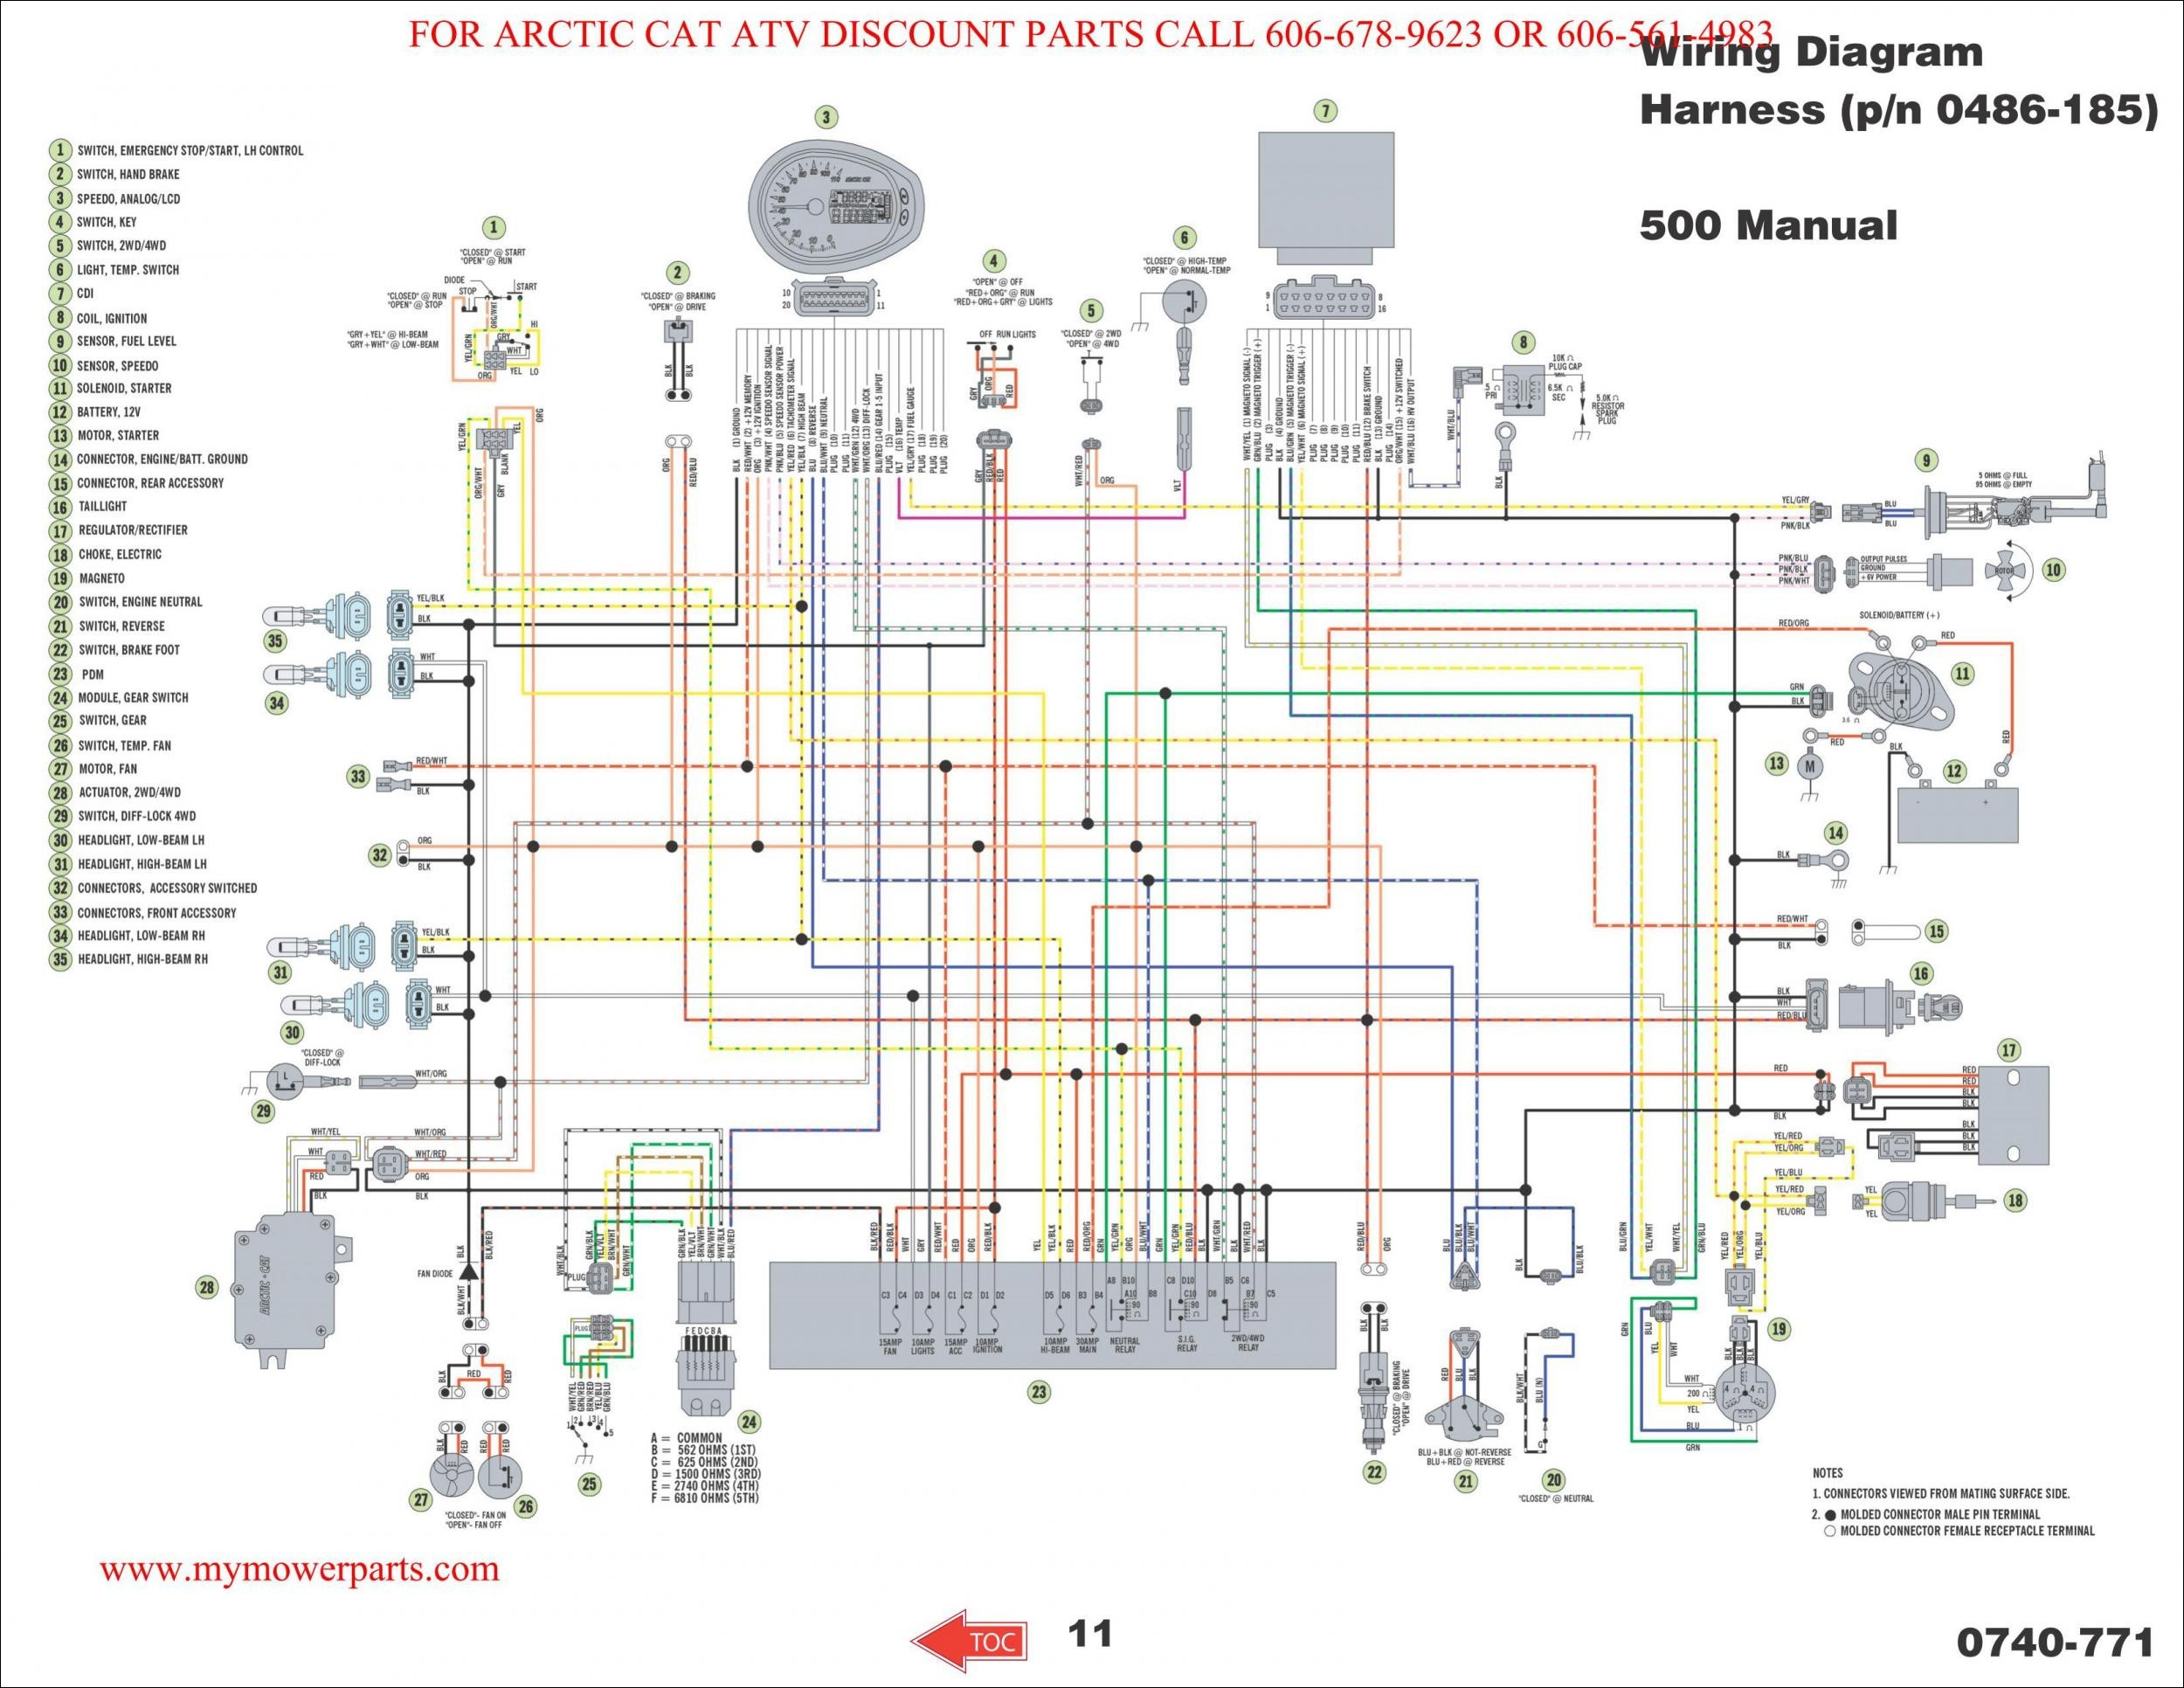 2006 polaris ranger 700 wiring diagram basic wiring diagram u2022 rh rnetcomputer co Polaris Ranger 500 Wiring Diagram 2003 Polaris Ranger Wiring Diagram